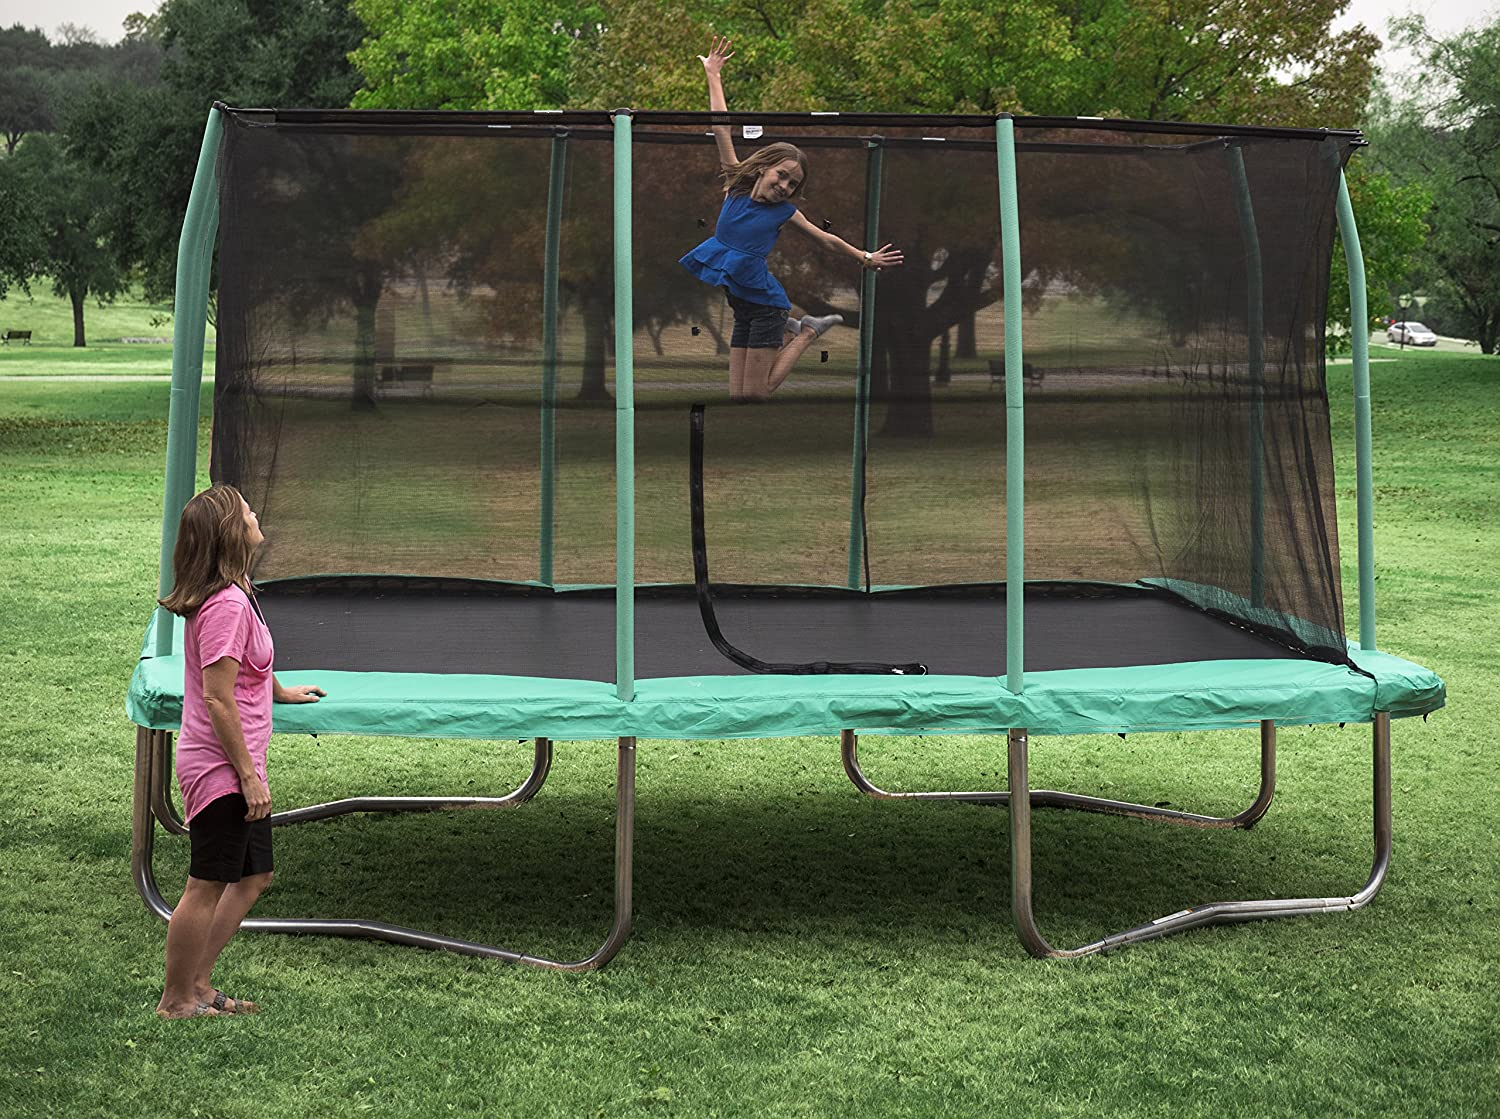 On the other hand, some users shared that the assembly instruction of the  trampoline is poorly written and some found the guidance as unclear. - BEST TRAMPOLINES REVIEWS 2019 Buying Guide PickMyTrampoline